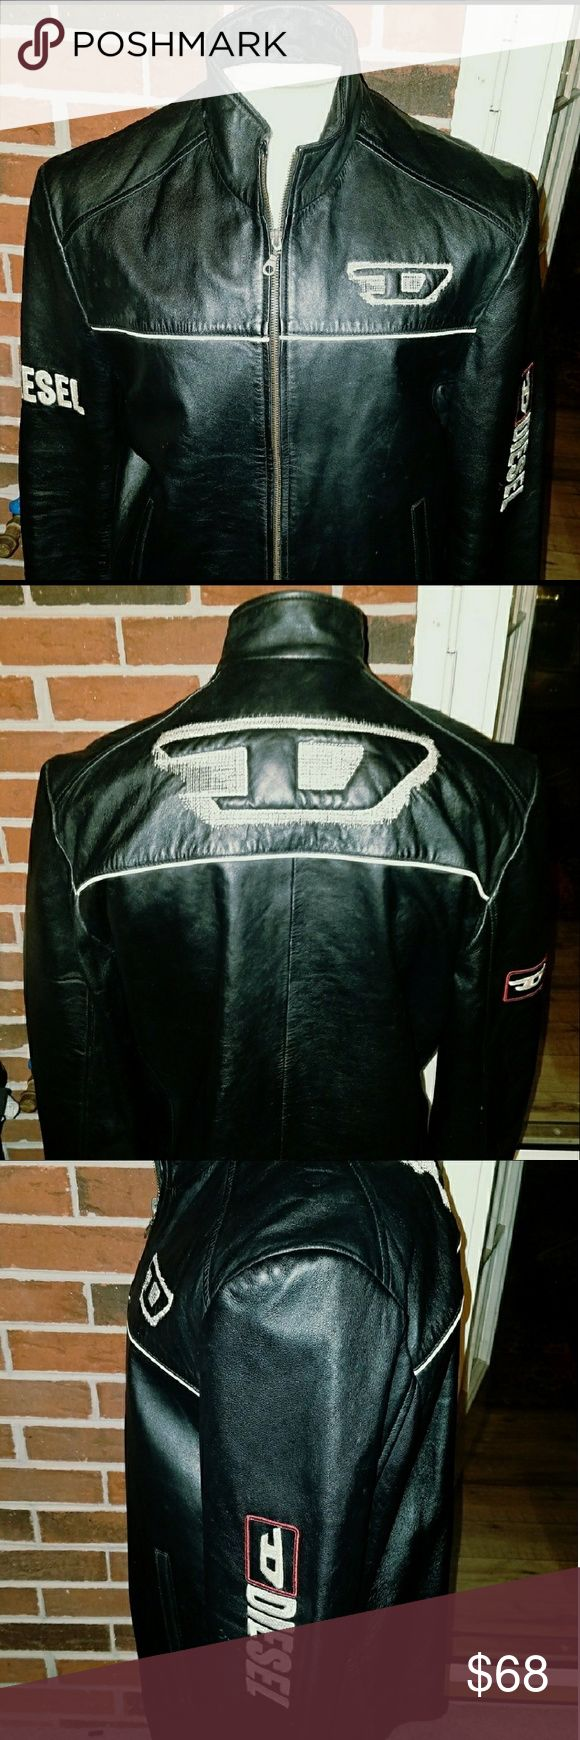 """Womans Soft Leather Diesel Jacket Sz 2XL Used but in great condition. No torn spots and zipper functions fine. The """"D"""" for """"Diesel"""" is elegantly embroidered into the back and front of this jacket (These are NOT patches). This can be worn as a casual jacket or as a biker jacket. There are no returns or refunds for non-fitment. I list what doesn't fit me back onto Poshmark. This is just Poshmark etiquette to me. Diesel Jackets & Coats"""